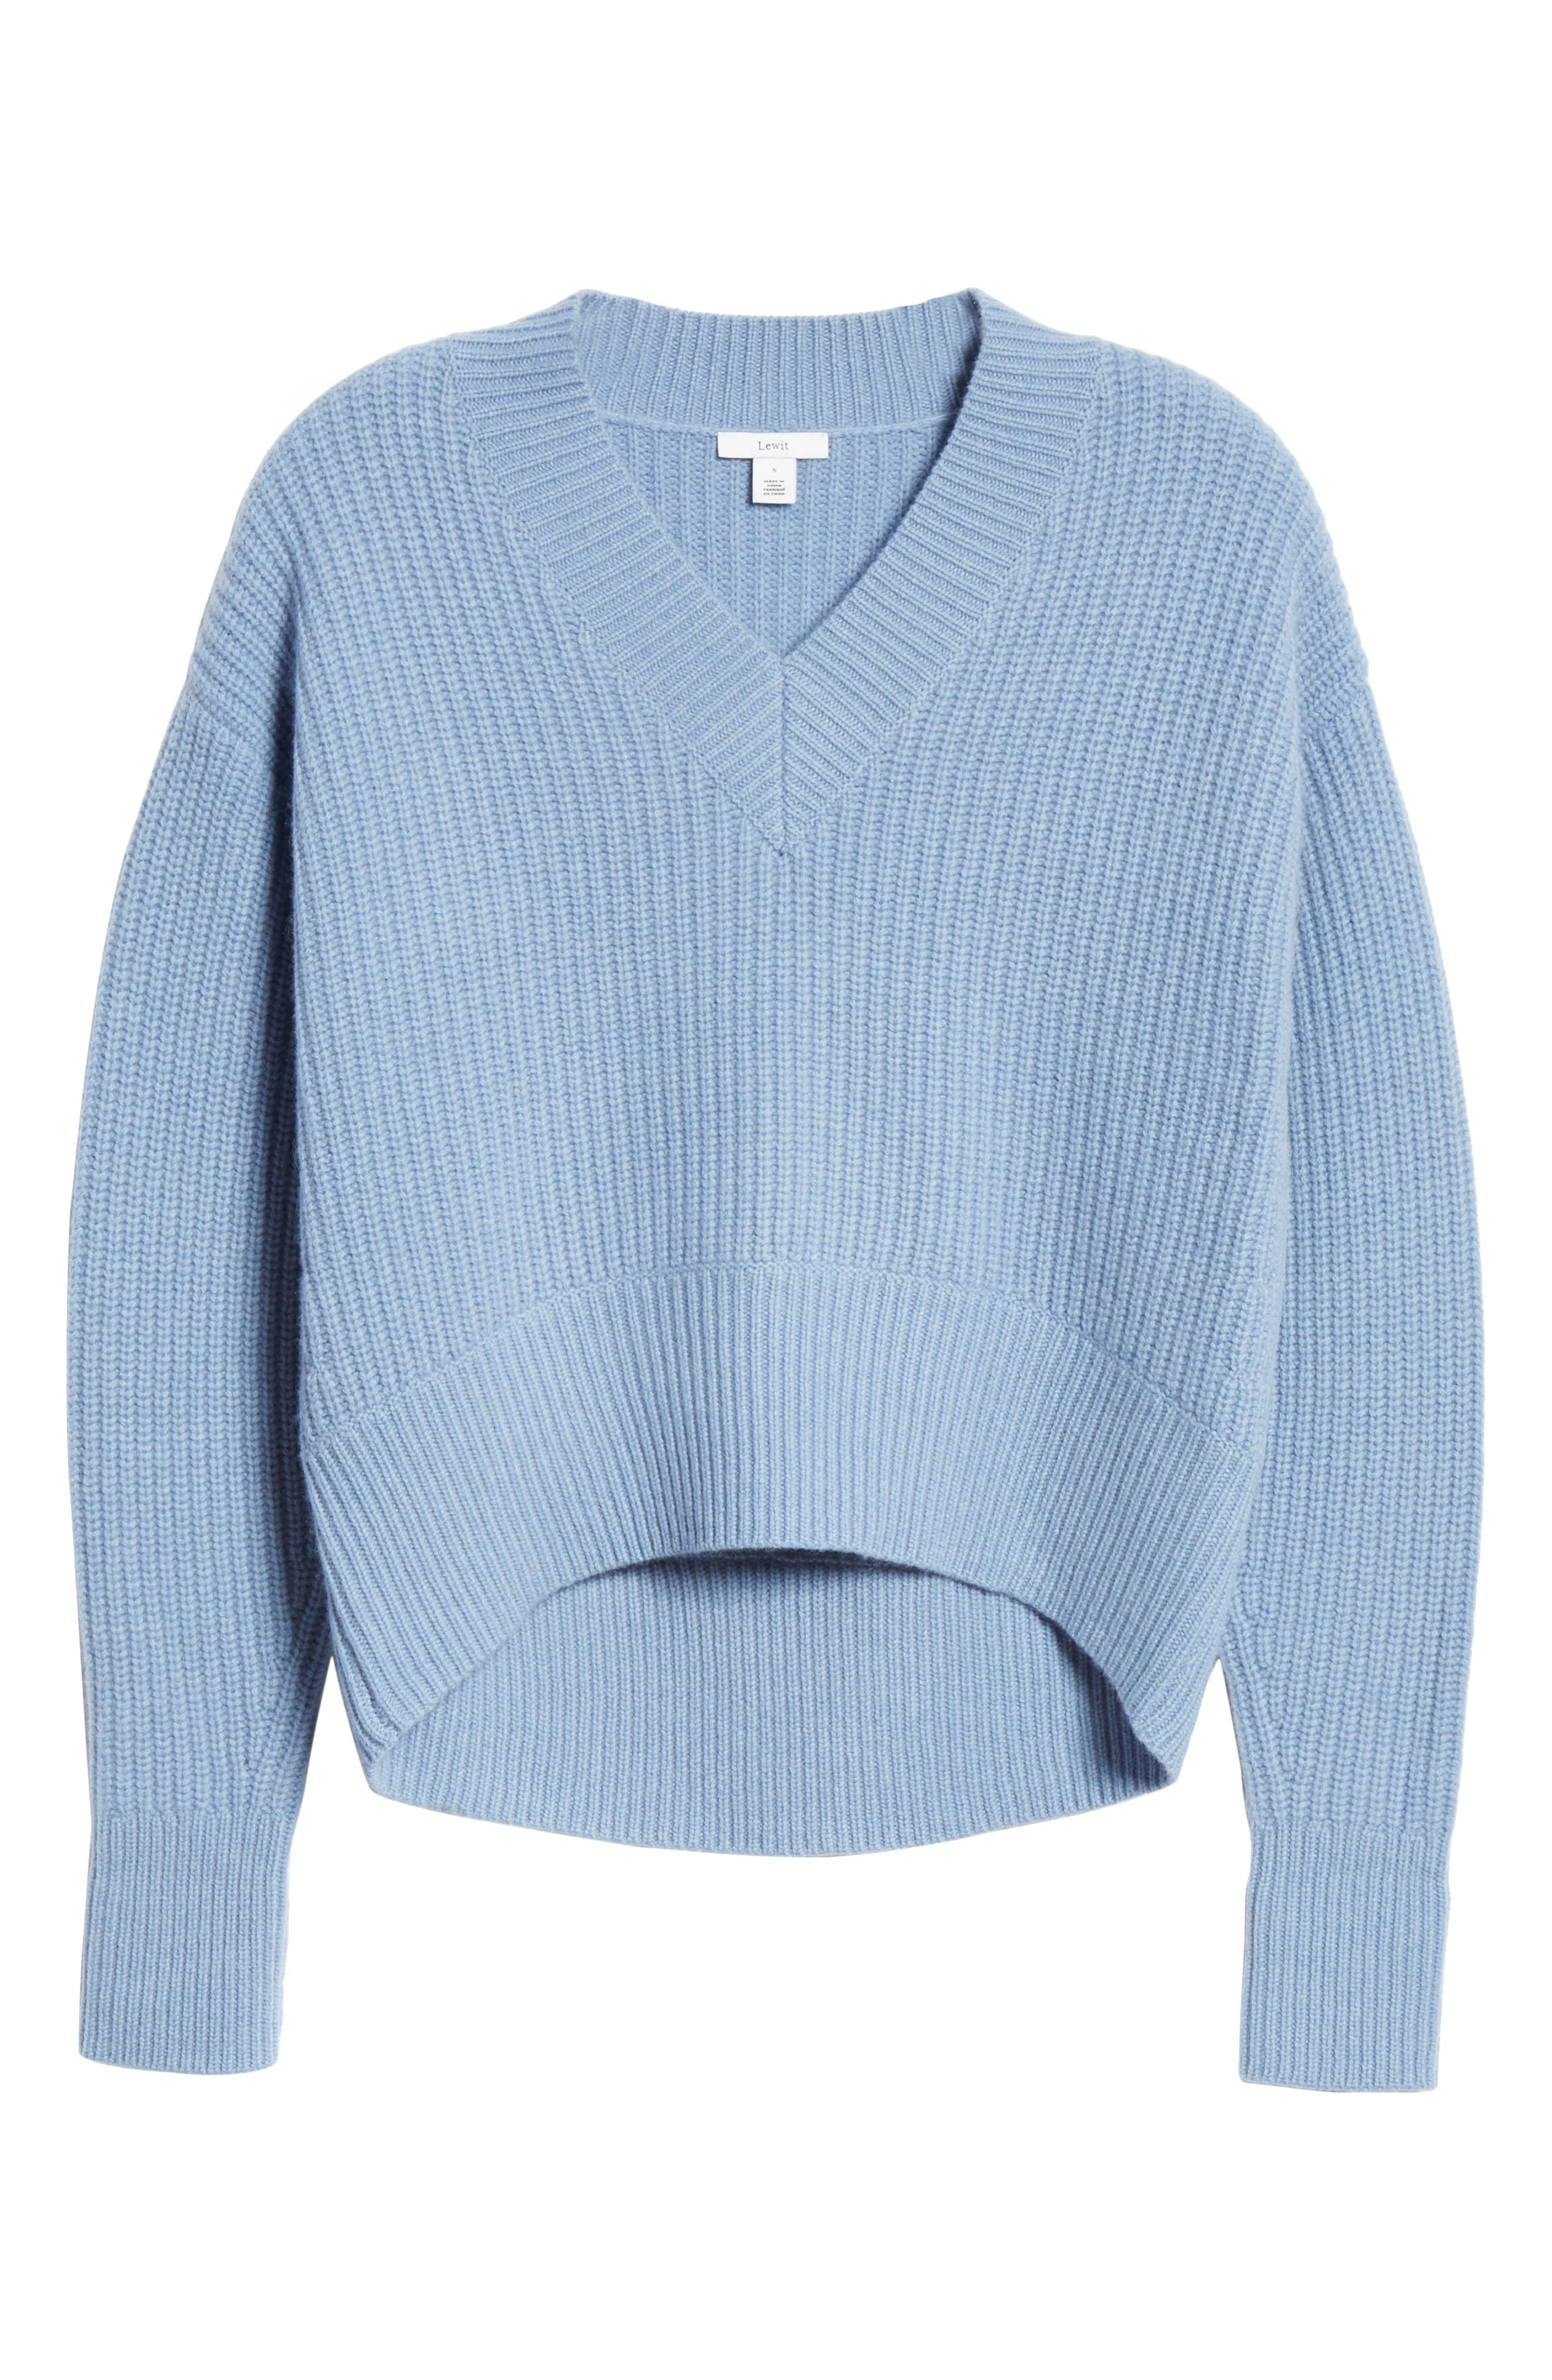 V-Neck Wool & Cashmere Sweater,                             Alternate thumbnail 6, color,                             BLUE COLONY